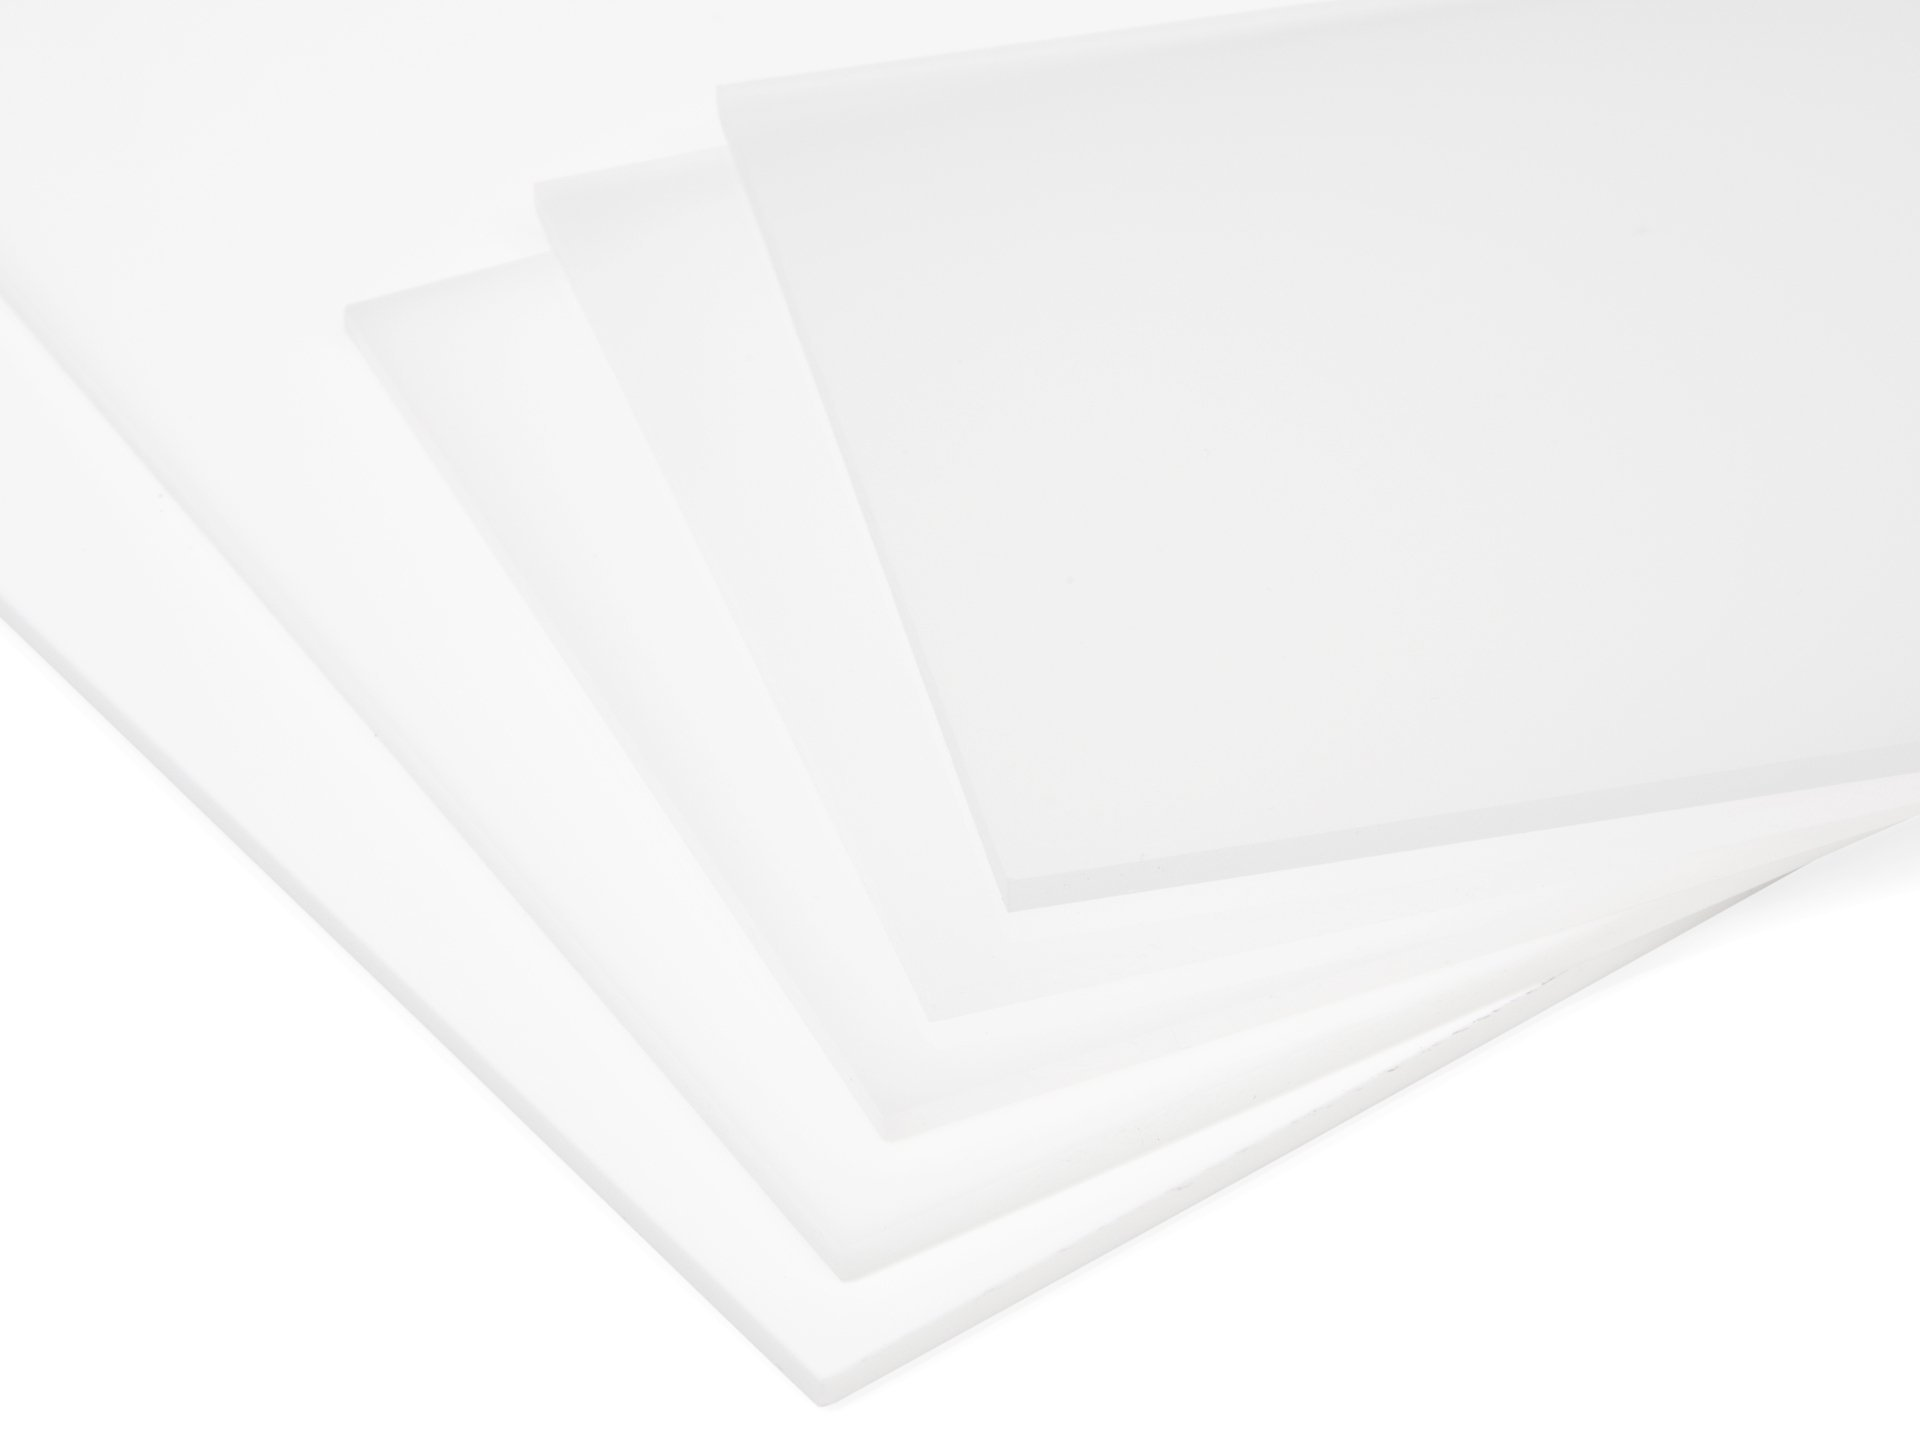 Buy Plexiglas GS white (milky) online at Modulor